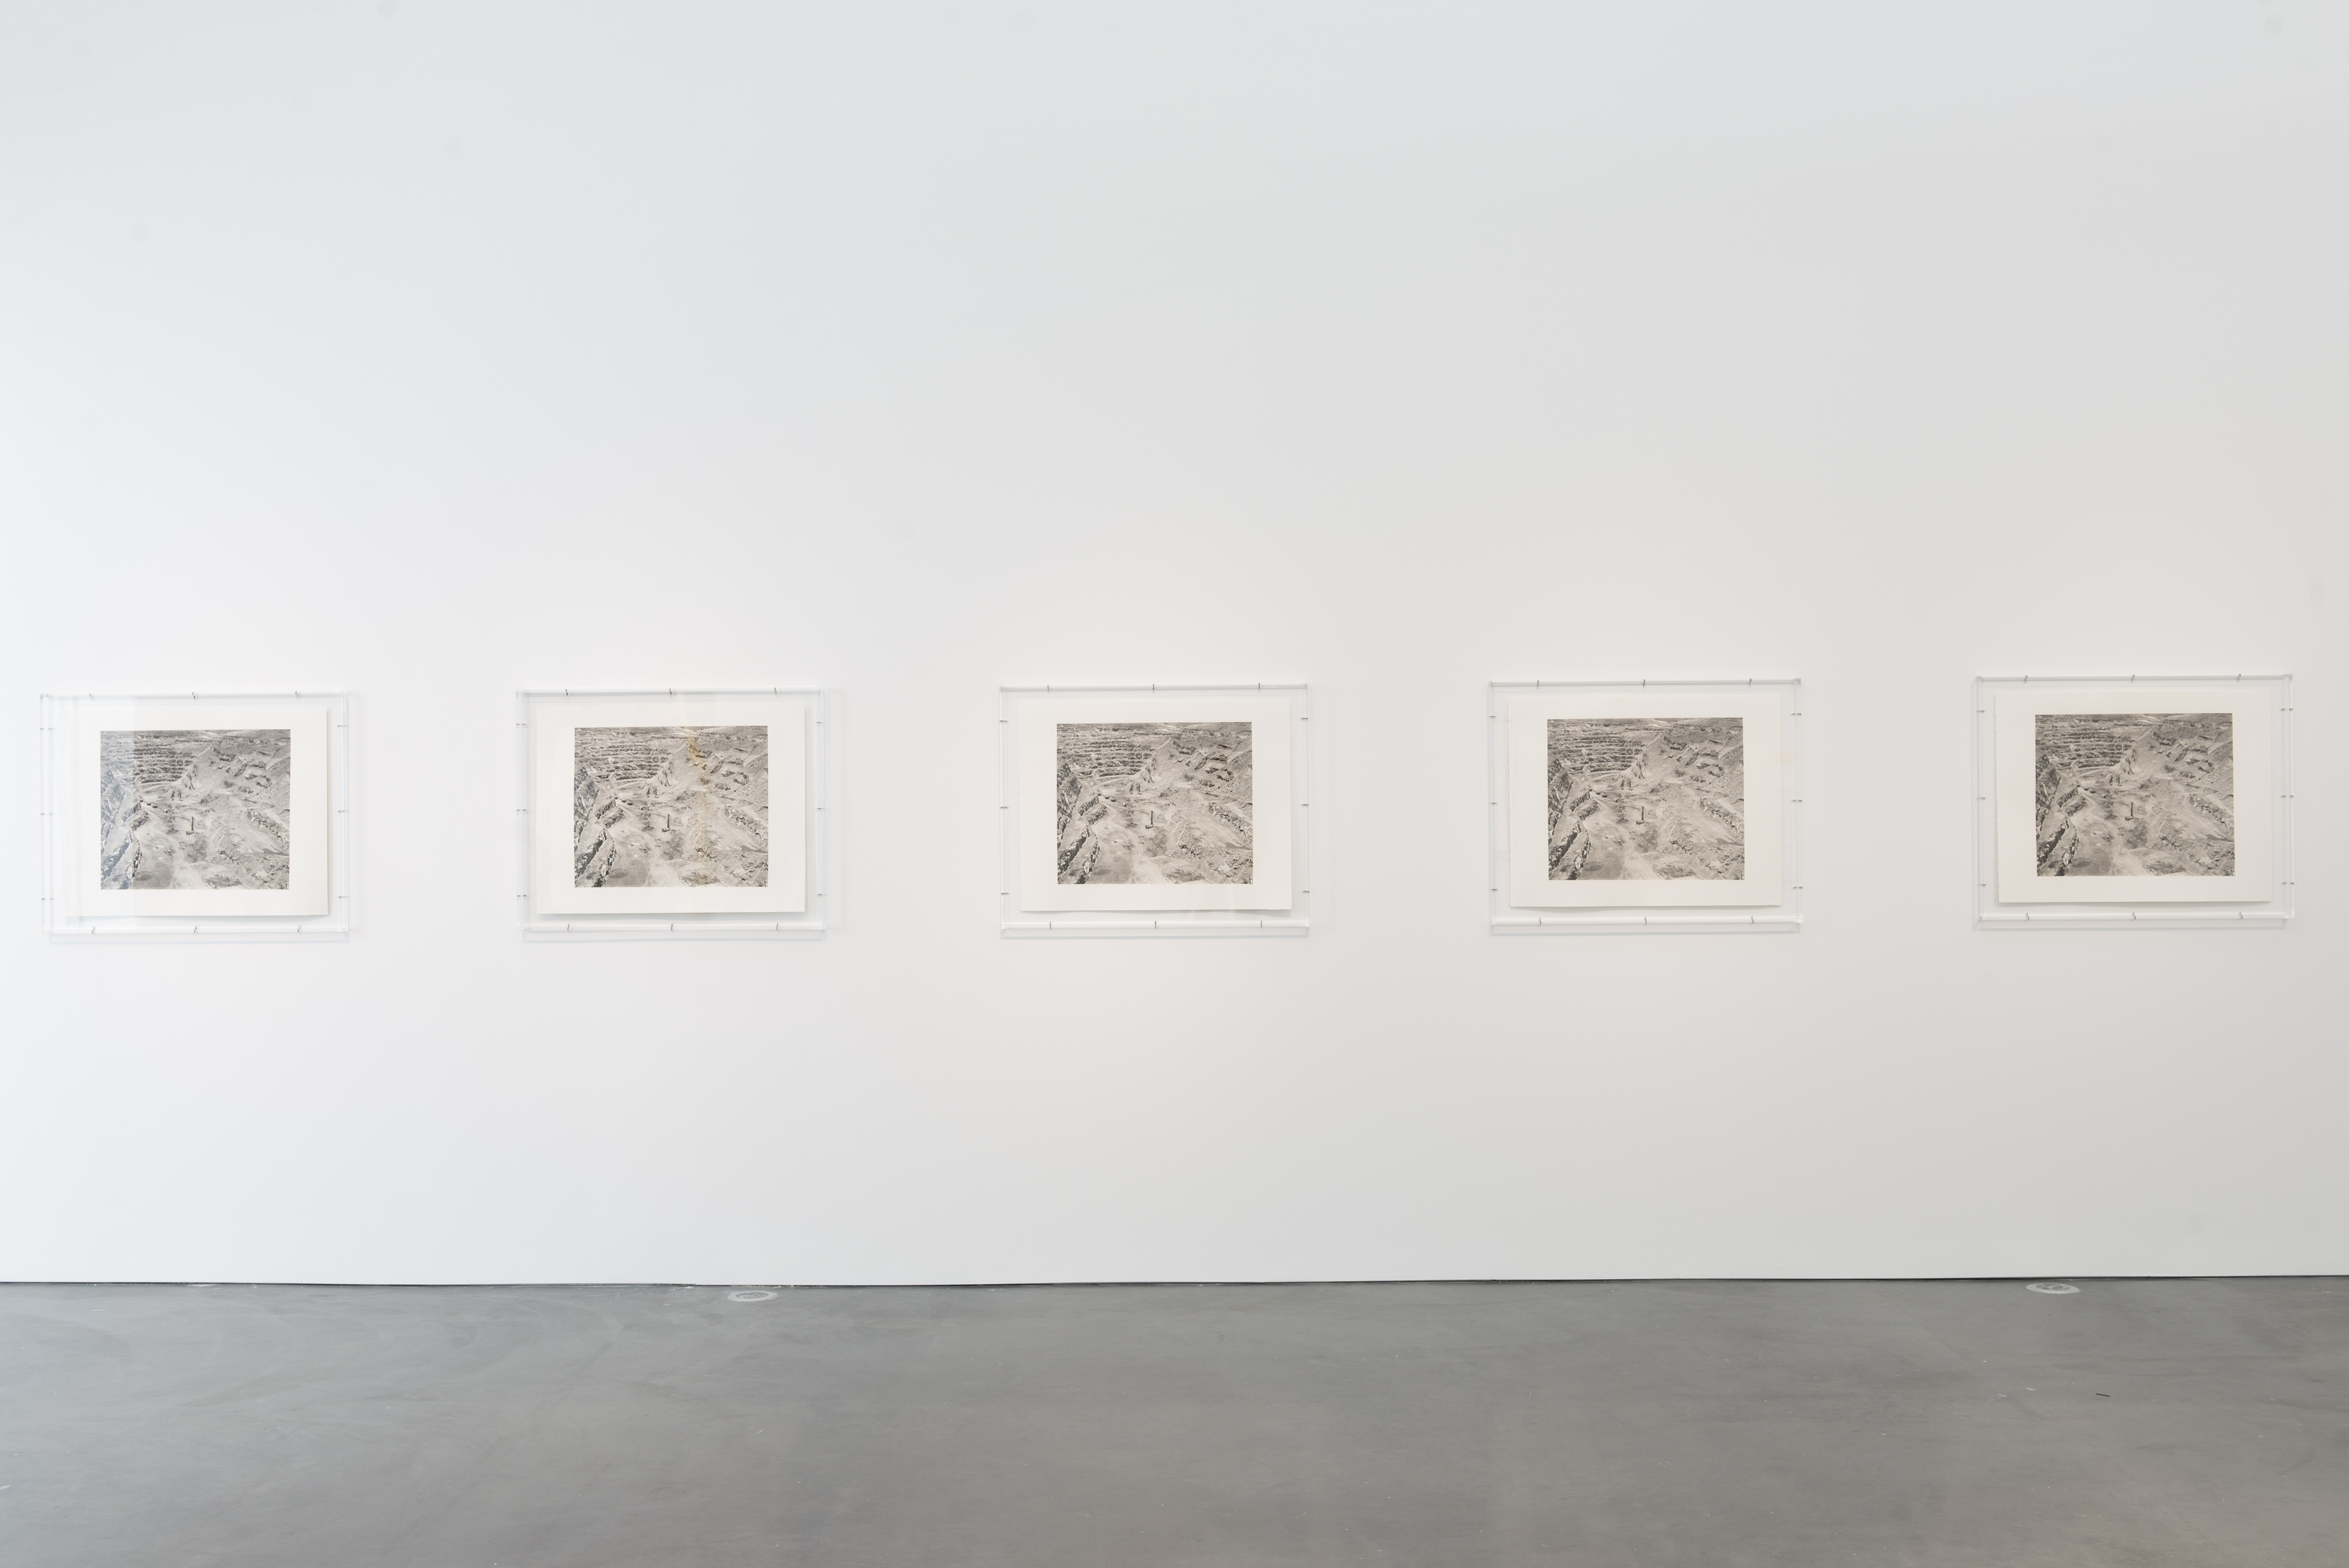 2005, platinum/palladium prints framed in acrylic boxes, five parts, each framed 75.4 × 94.6 × 5.9 cm. Collection of Museum of Contemporary Art Chicago, Gift of Gerald S. Elliott, Albert A. Robin by exchange (2014.35.a-e).